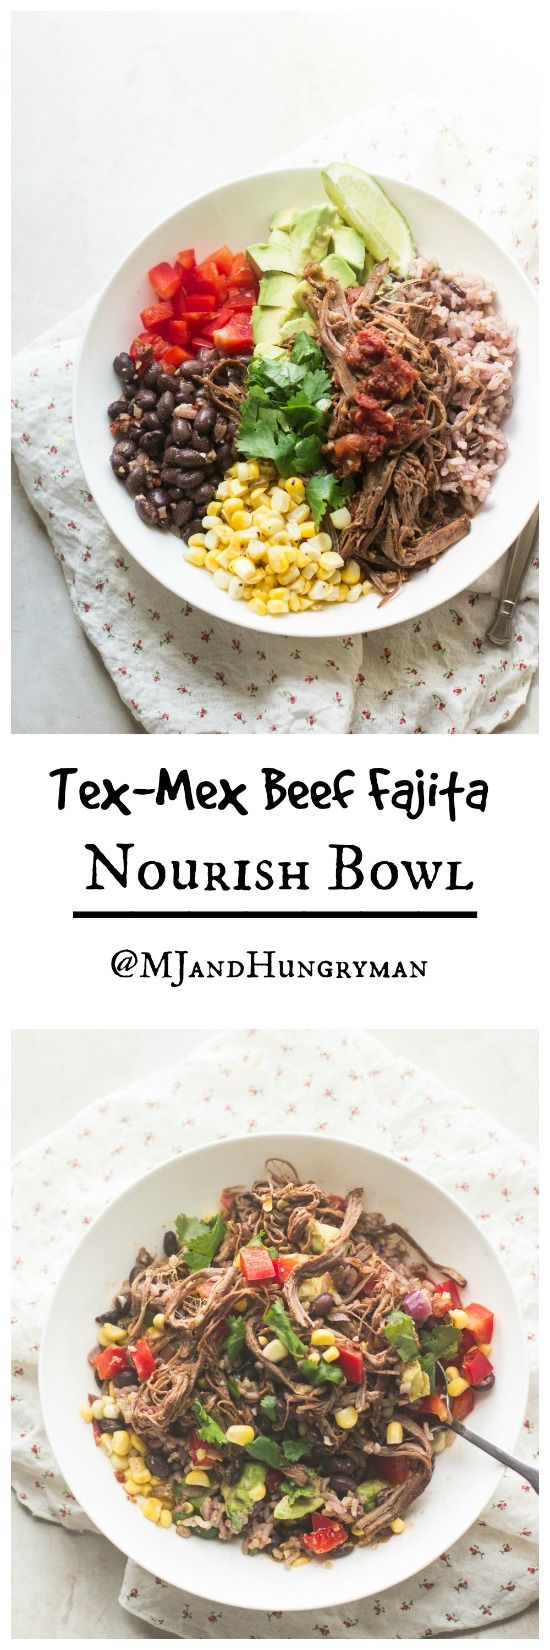 Tex-Mex Beef Fajita Nourish Bowl + many 2-for-1 recipes // The Adventures of MJ and Hungryman